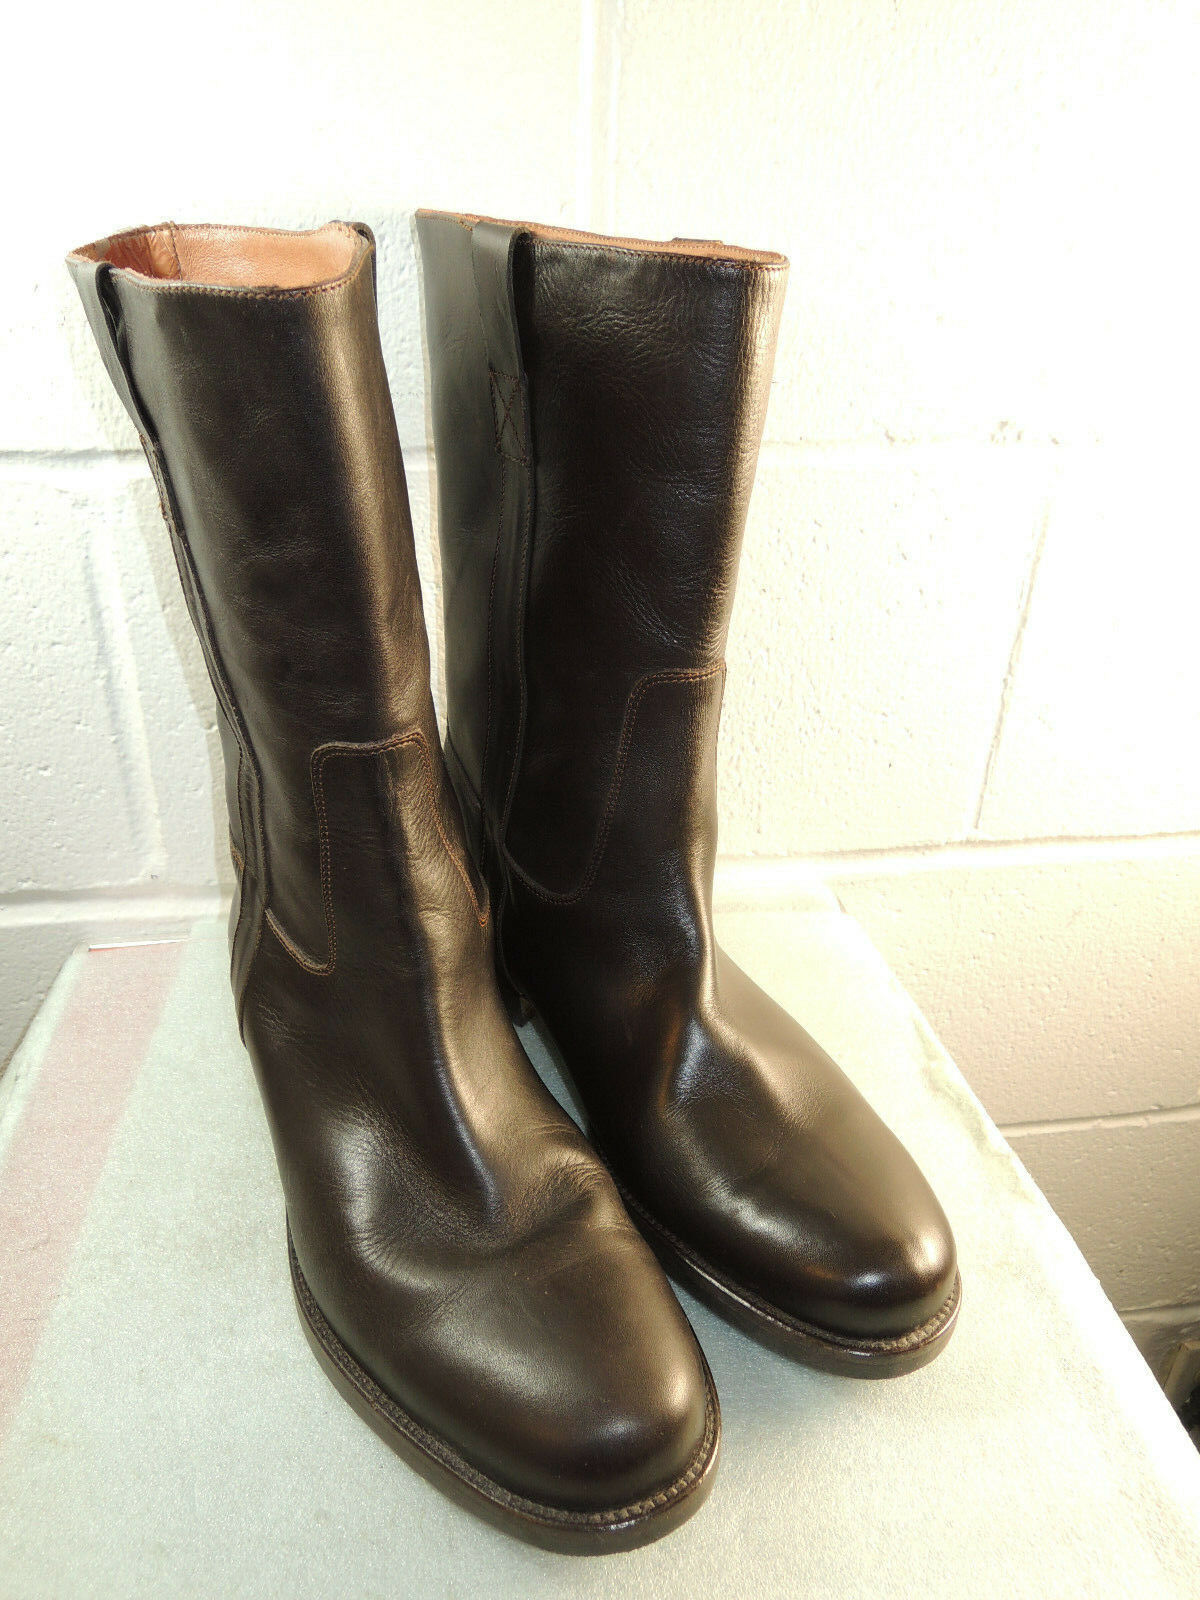 J. Crew Crew Crew 'Brewster' Brown Leather Pull On Mid-Calf Equestrian Boot Women Size 12M e0db02